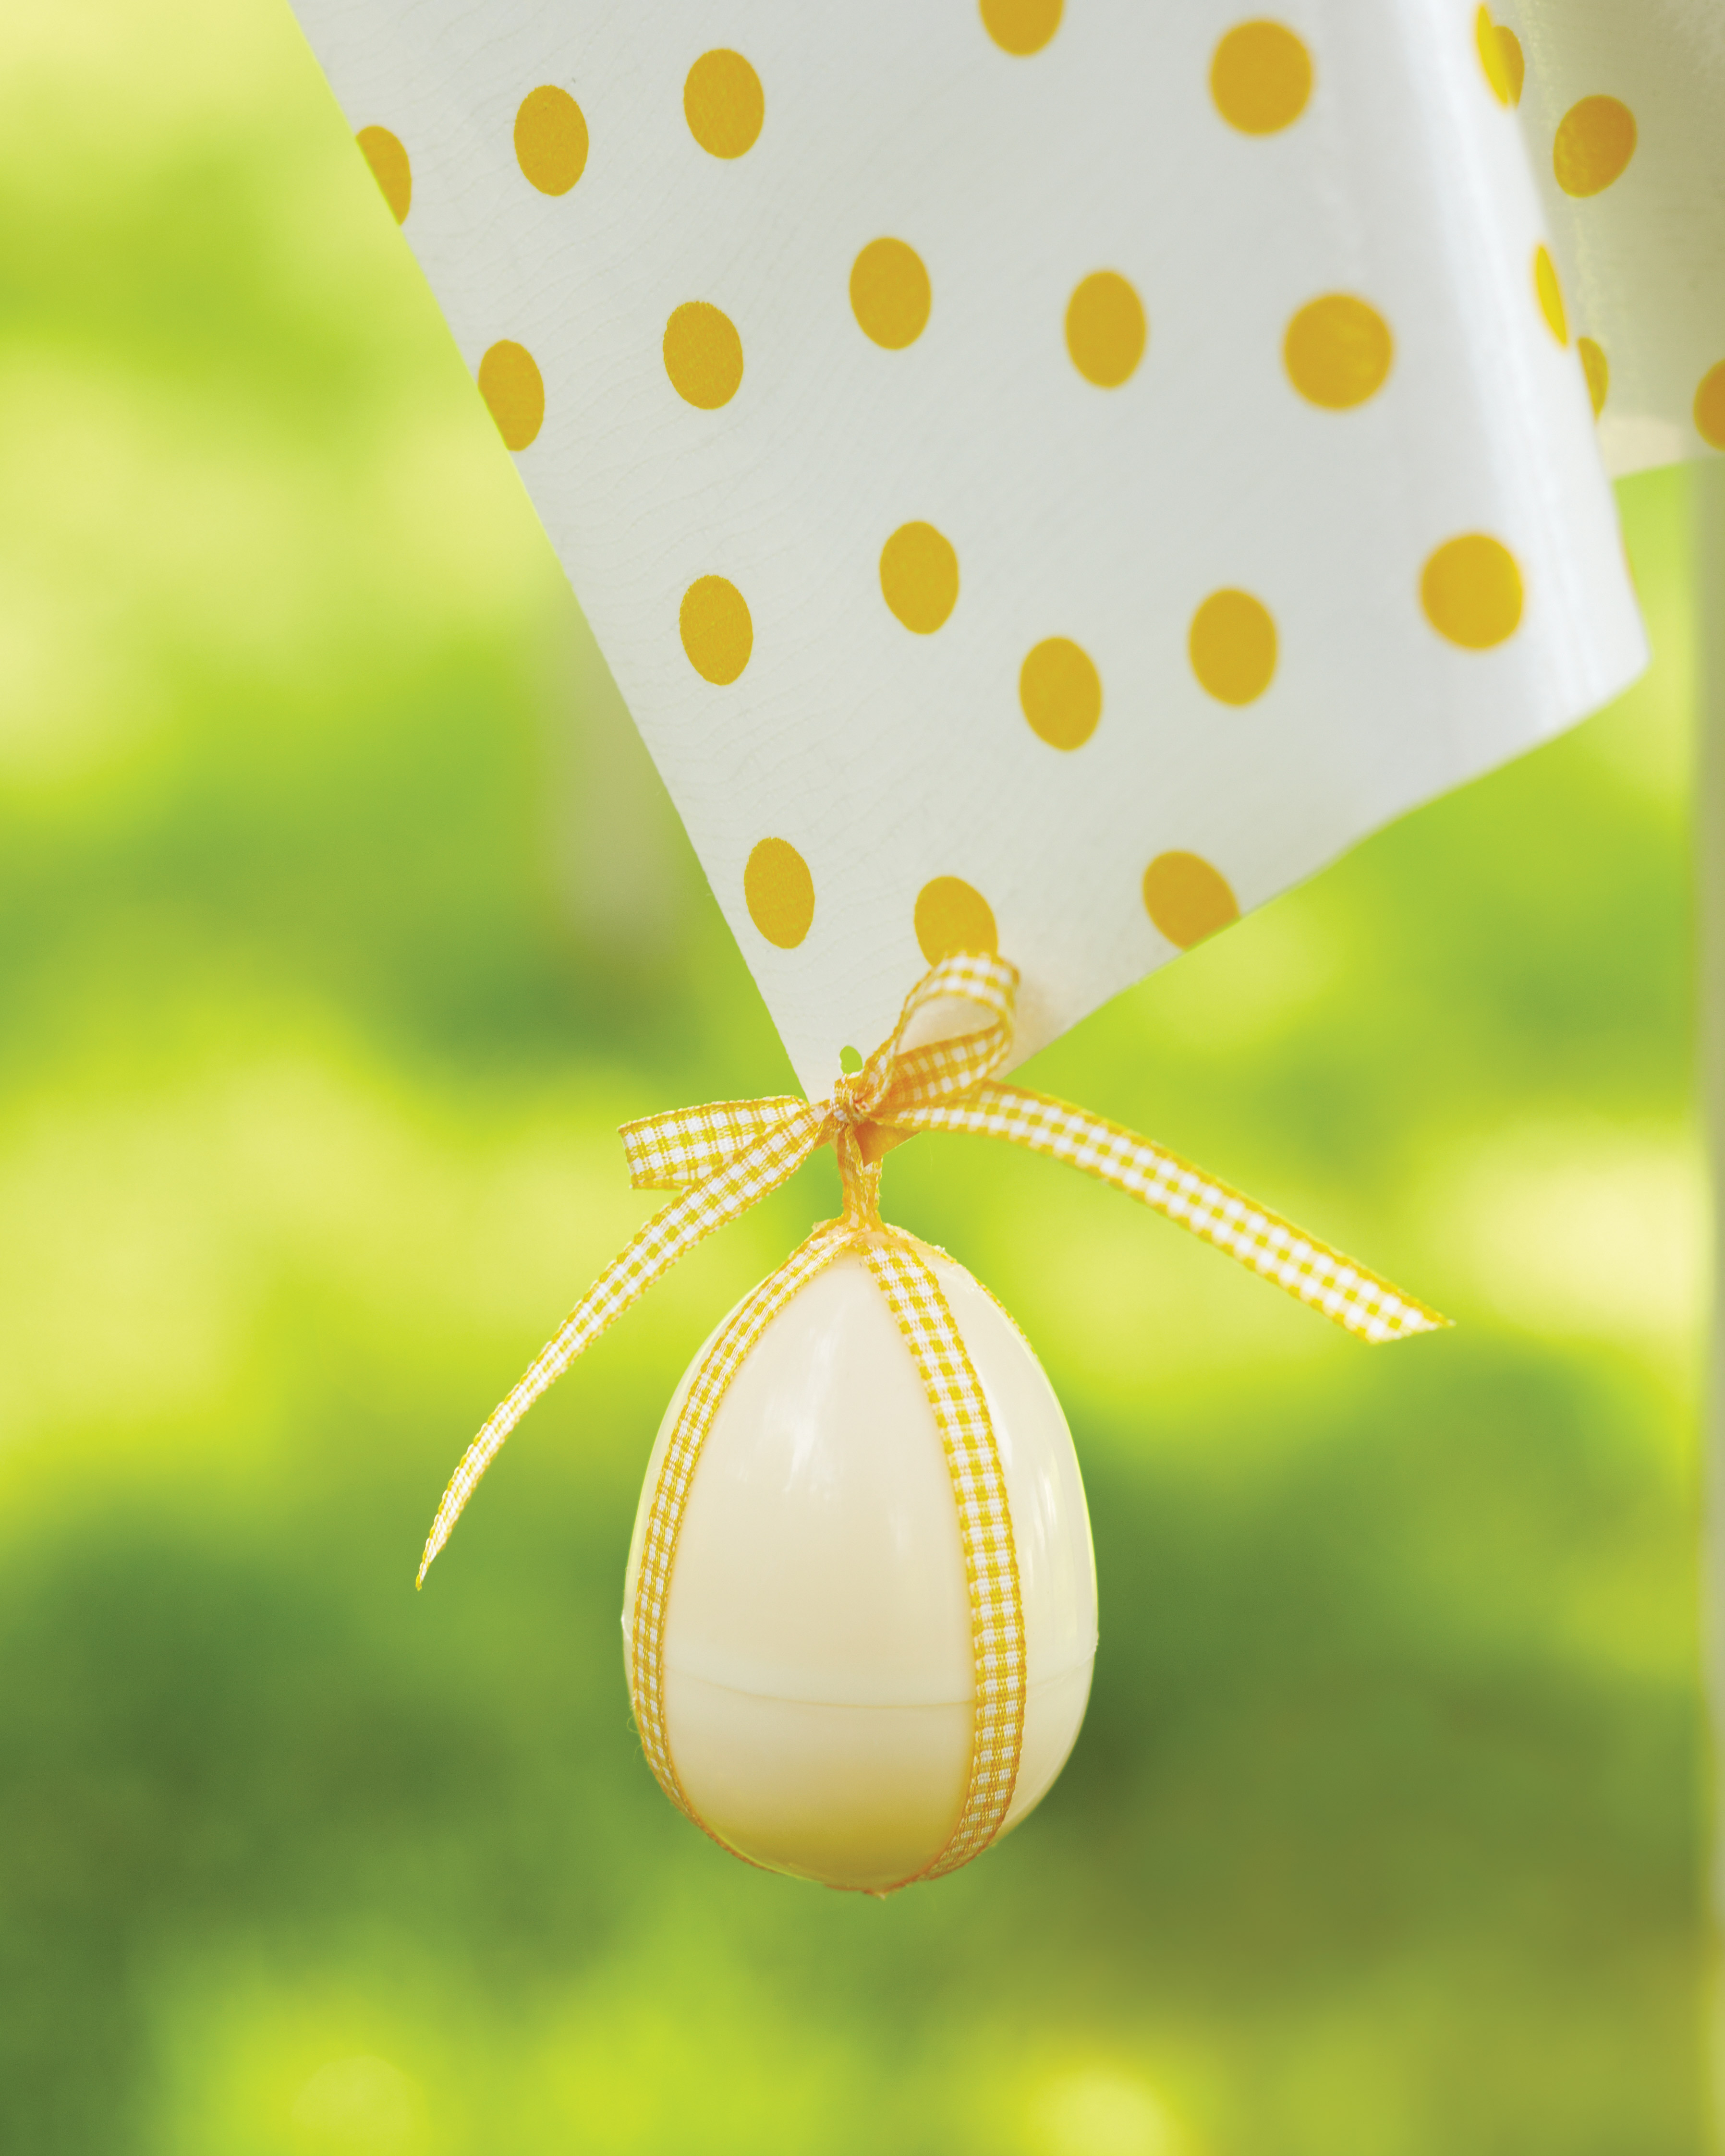 mld105925_0411_egghunt_kidtable_012_tablecloth.jpg